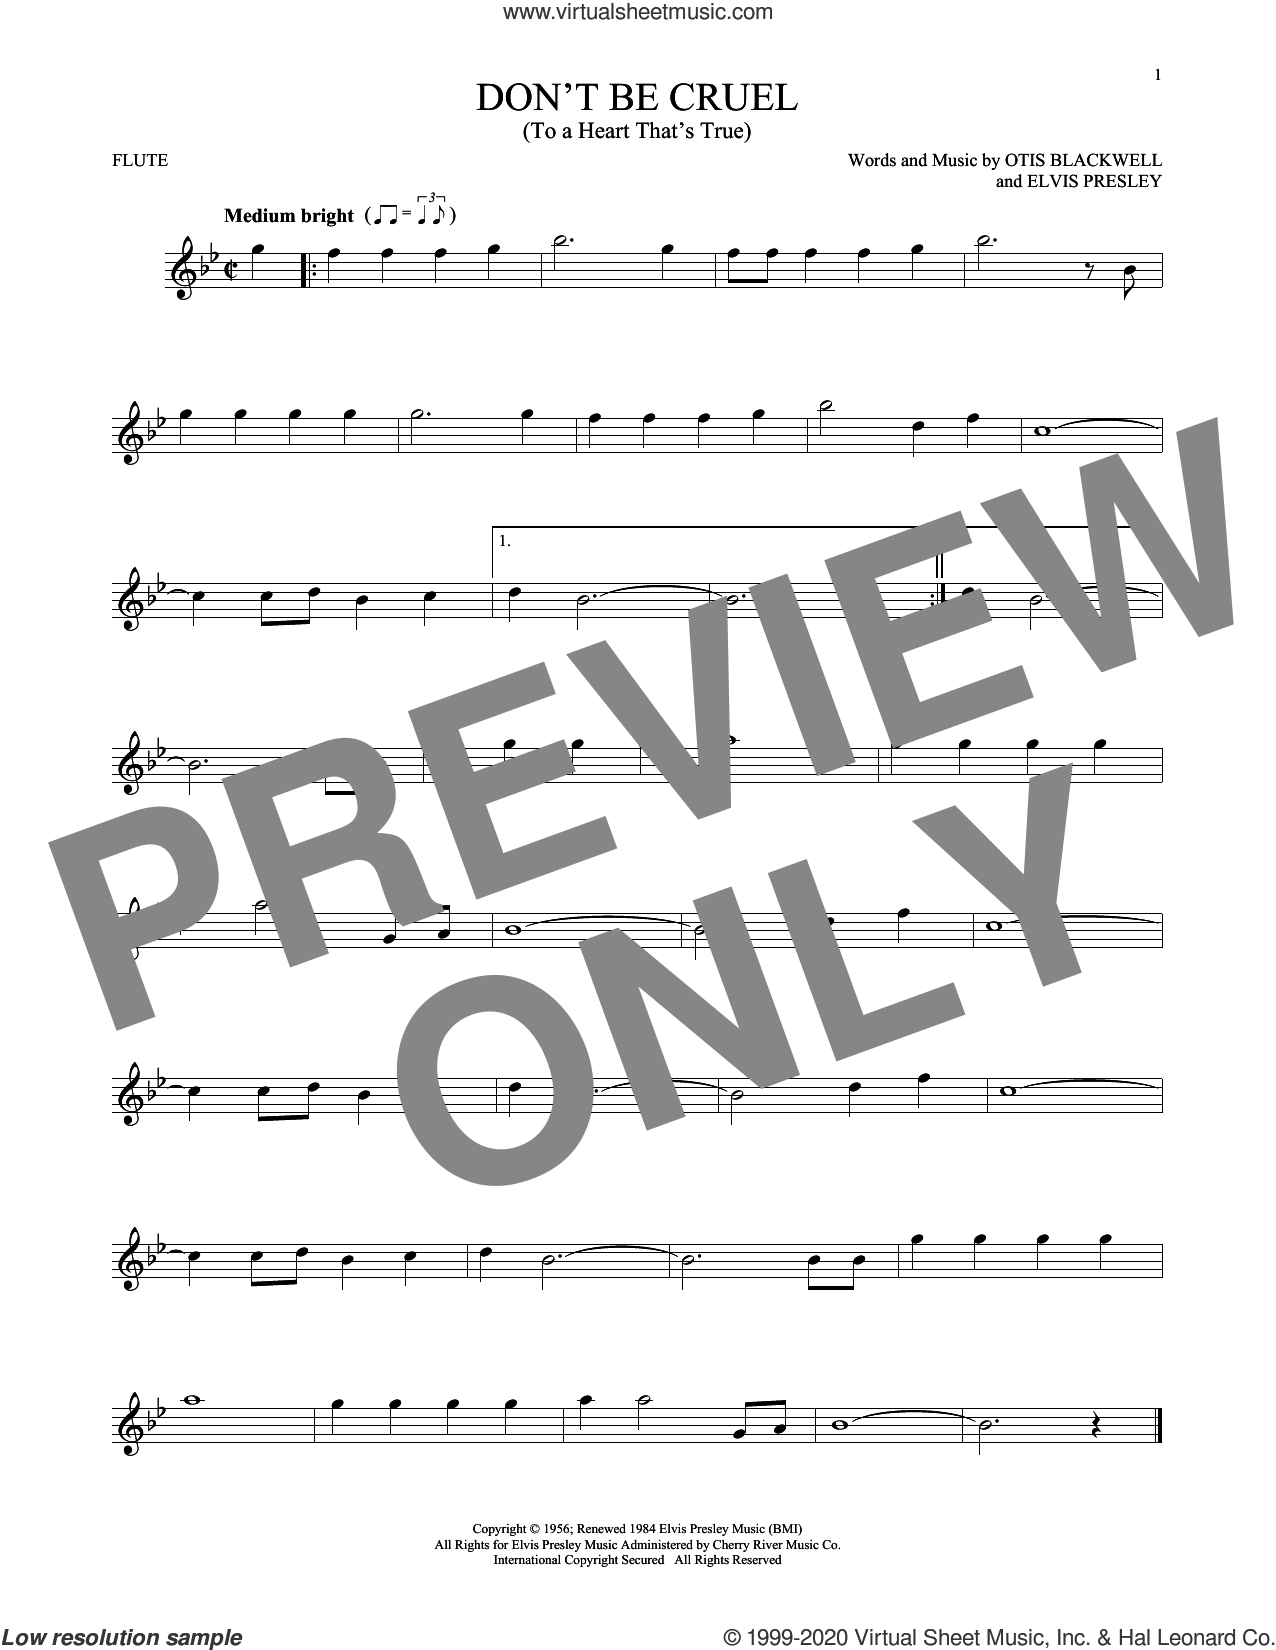 Don't Be Cruel (To A Heart That's True) sheet music for flute solo by Elvis Presley and Otis Blackwell, intermediate skill level